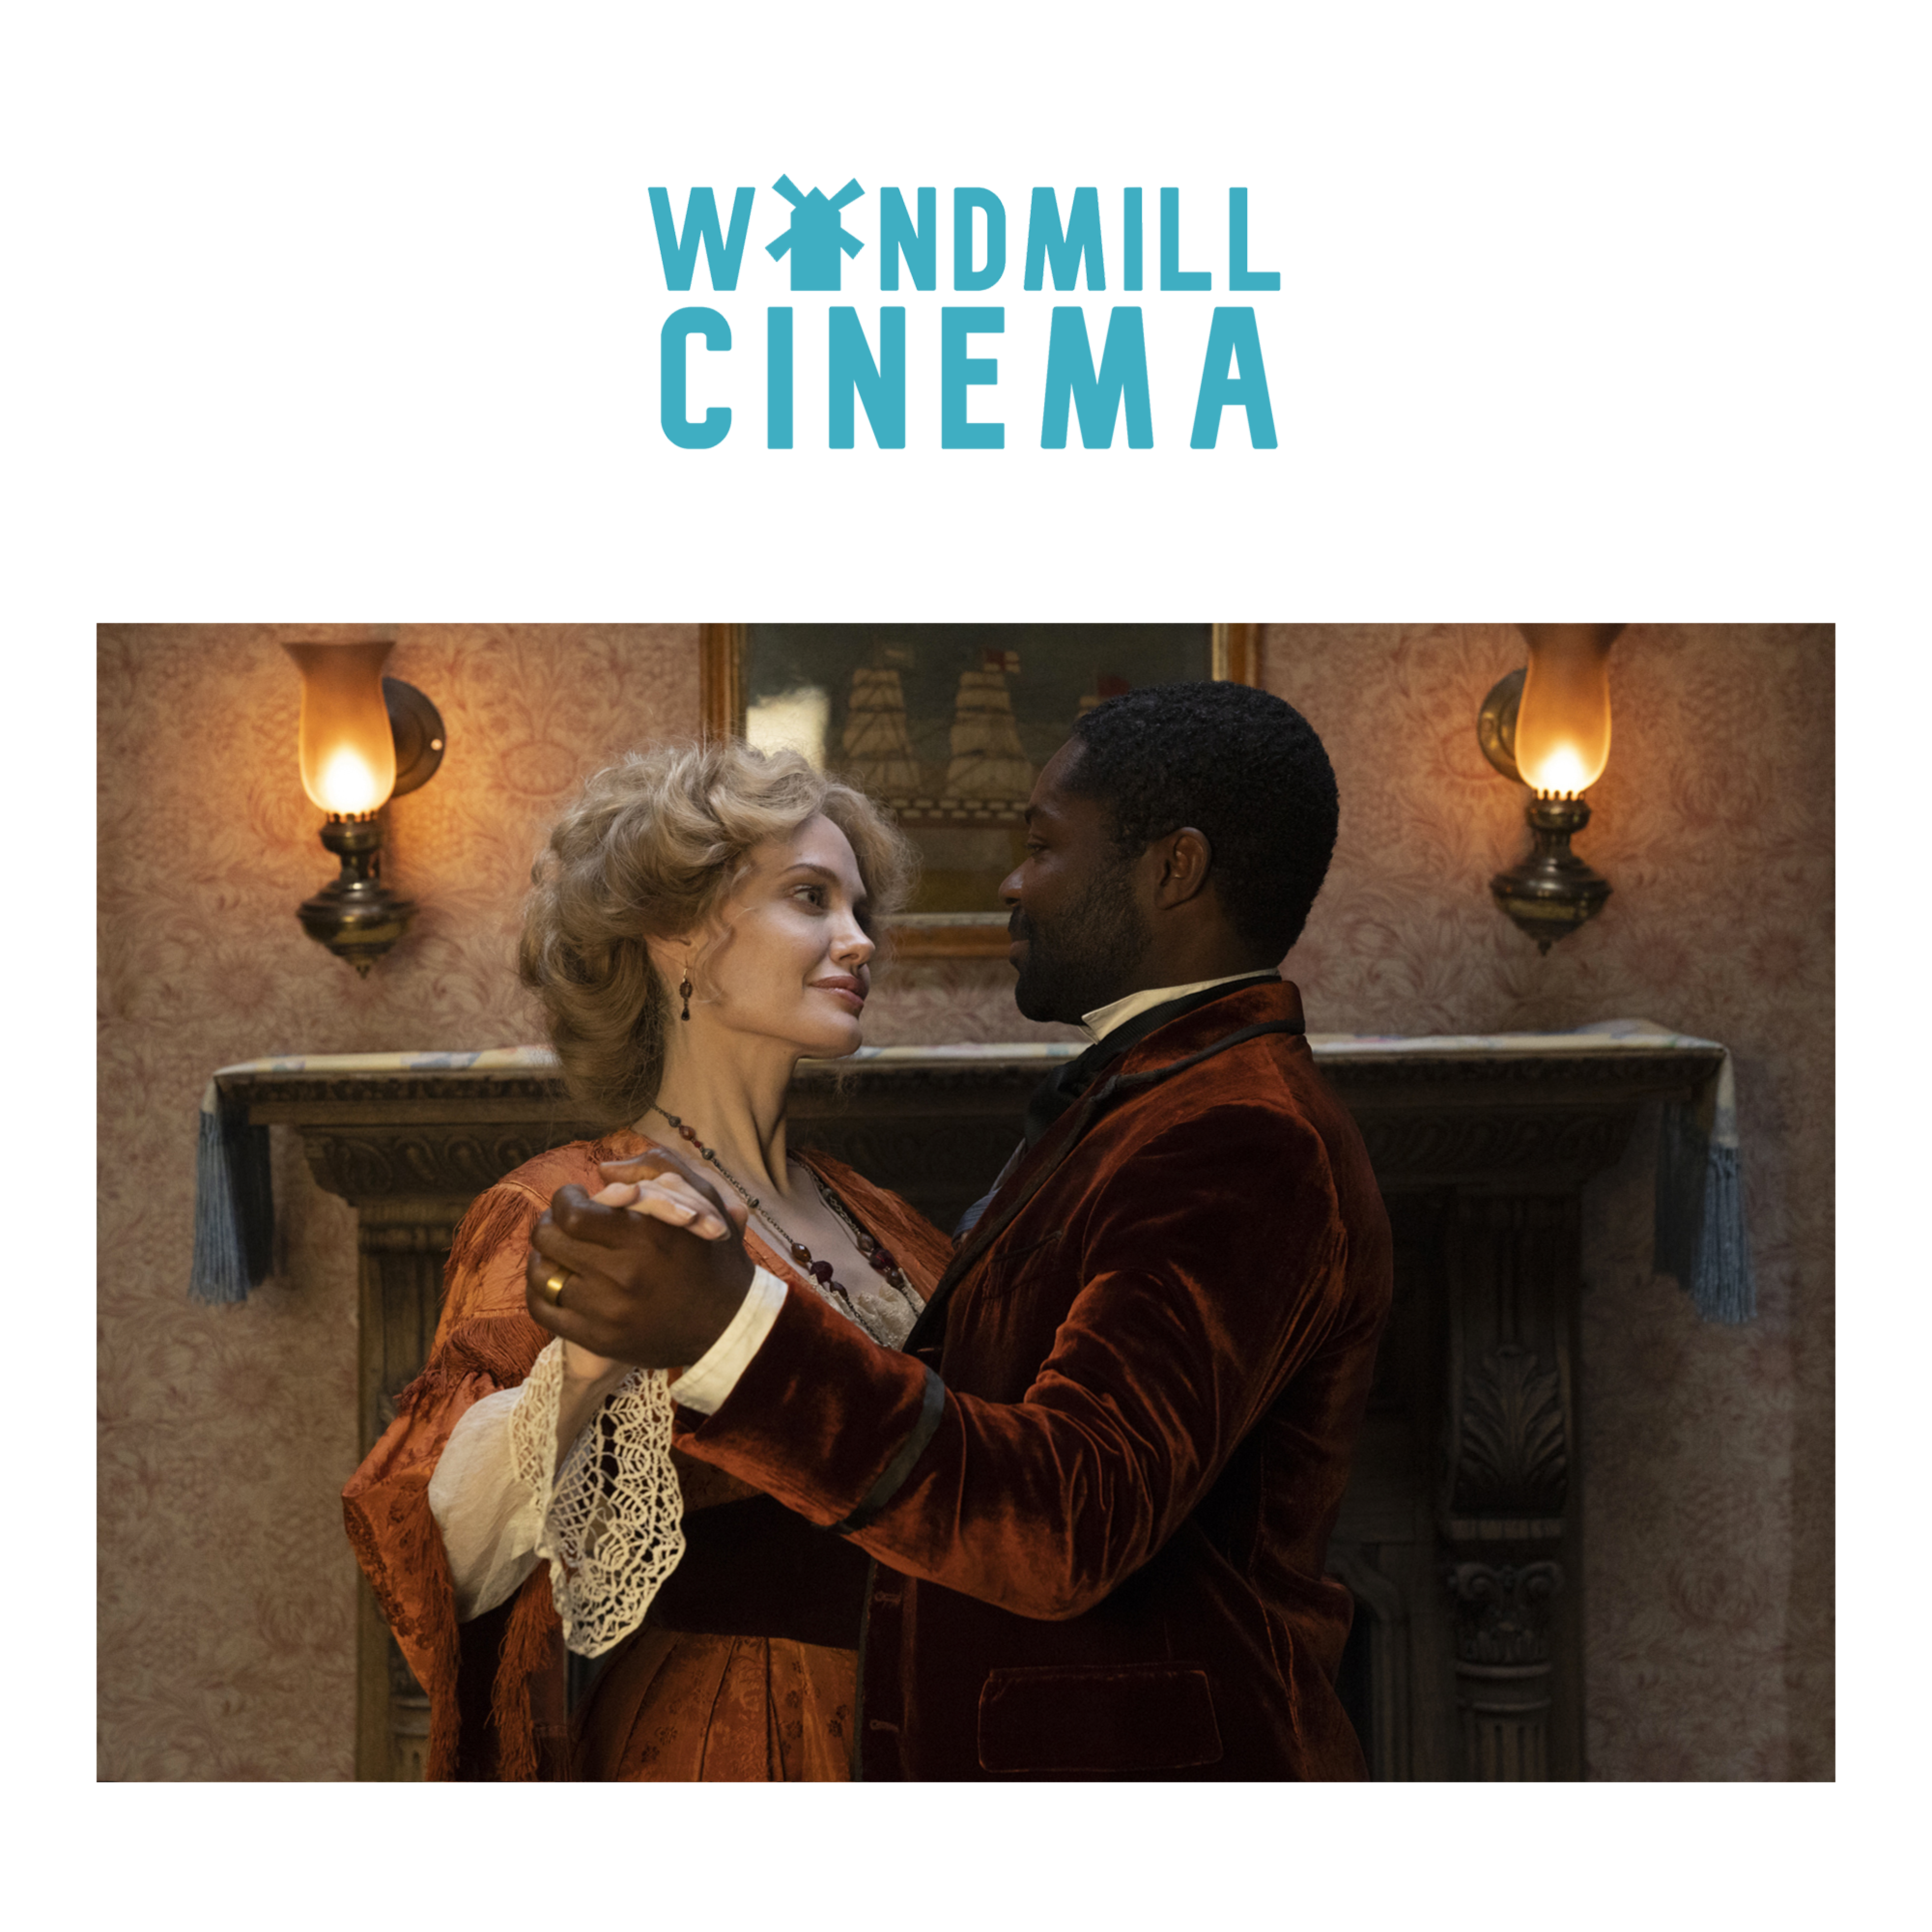 Come Away at Windmill Cinema